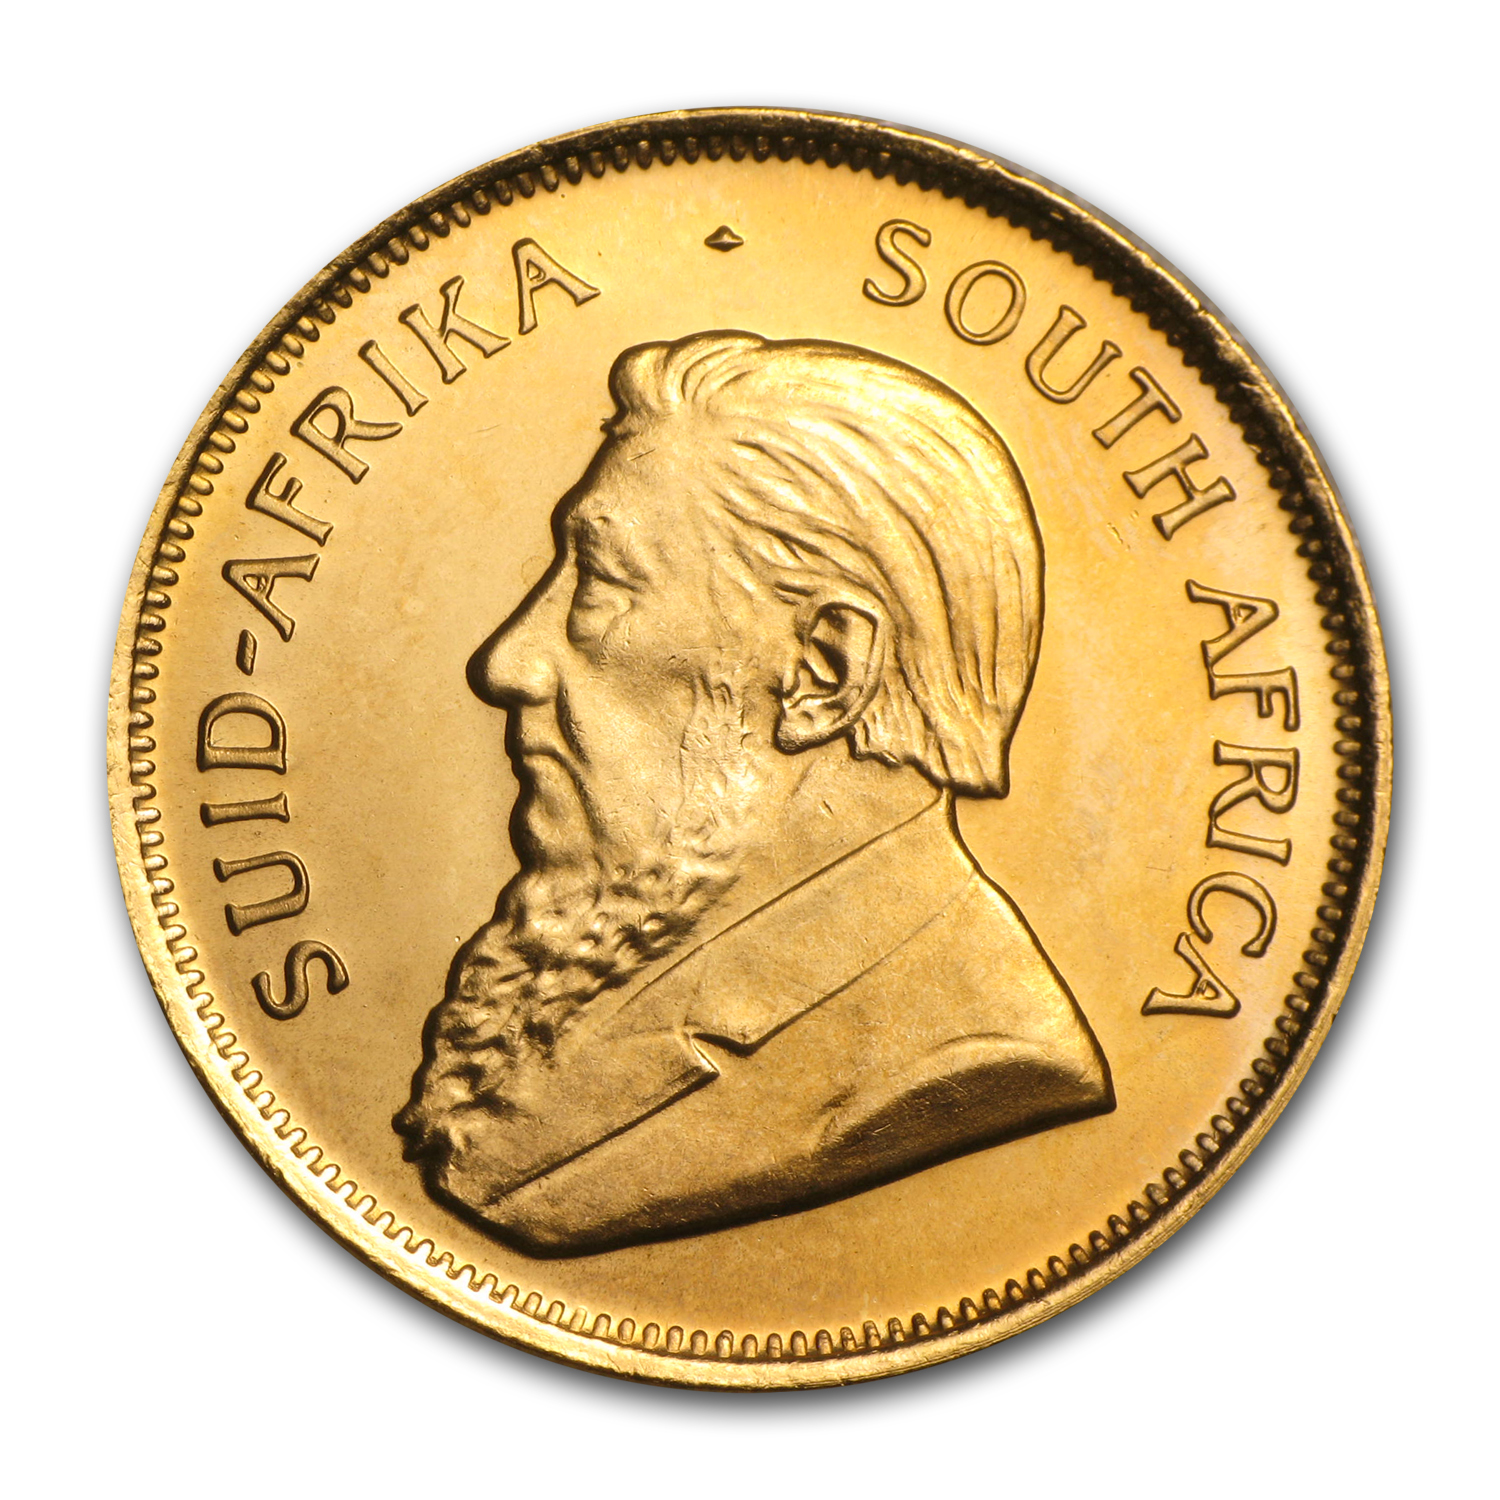 1/2 oz Gold South African Krugerrand (Better Dates)